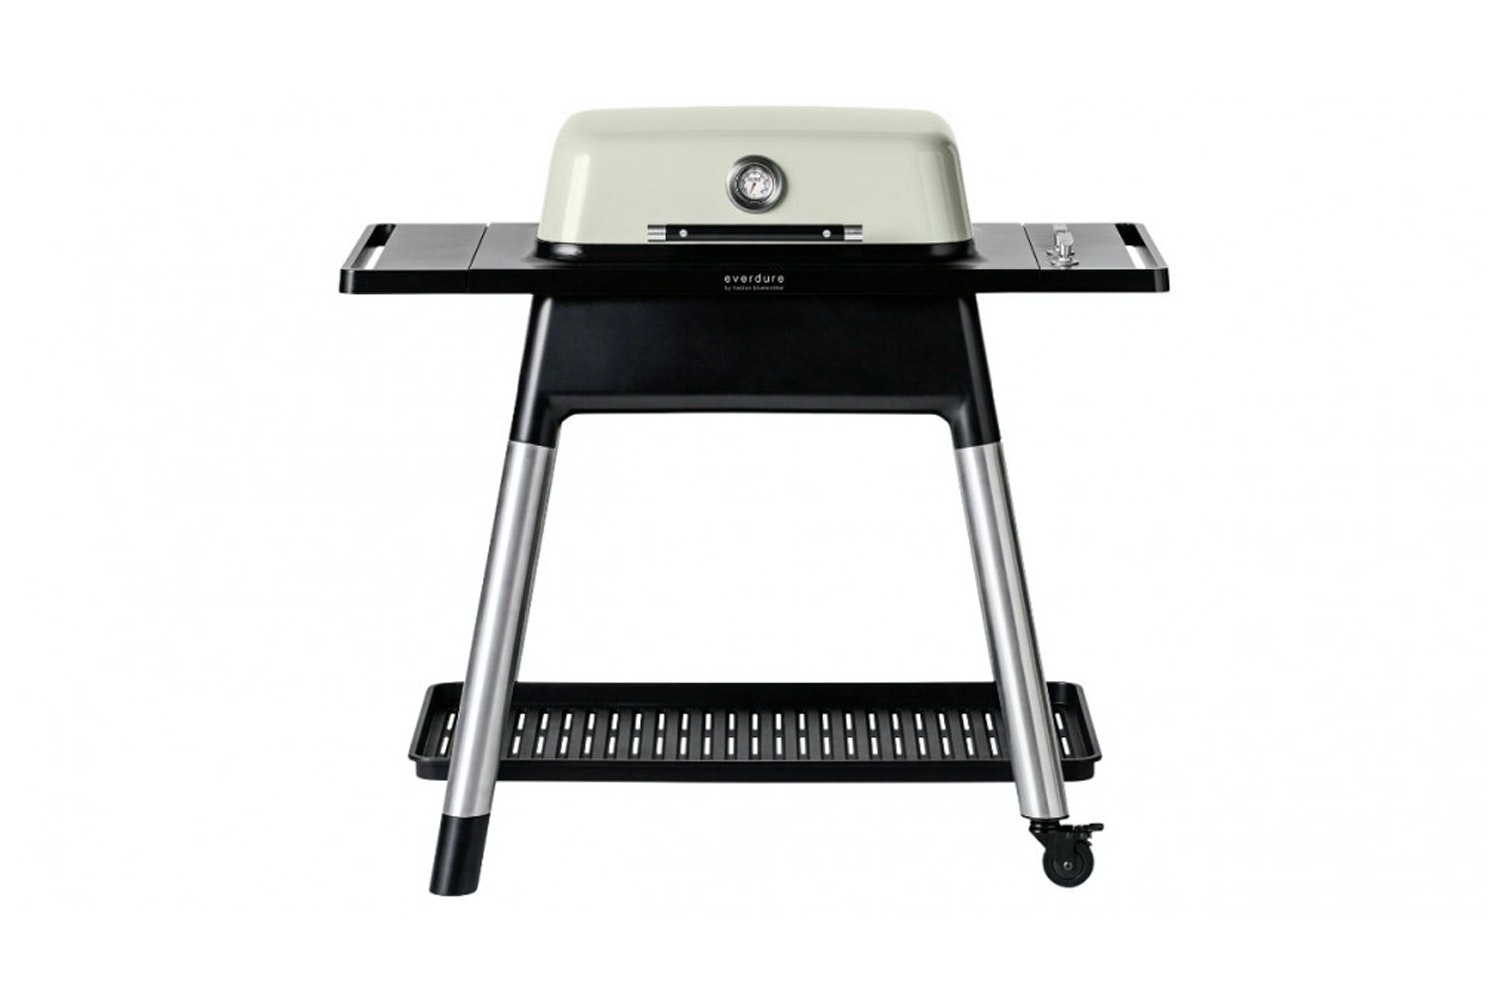 Everdure Force 2 Burner Gas Barbeque by Heston Blumenthal - Stone